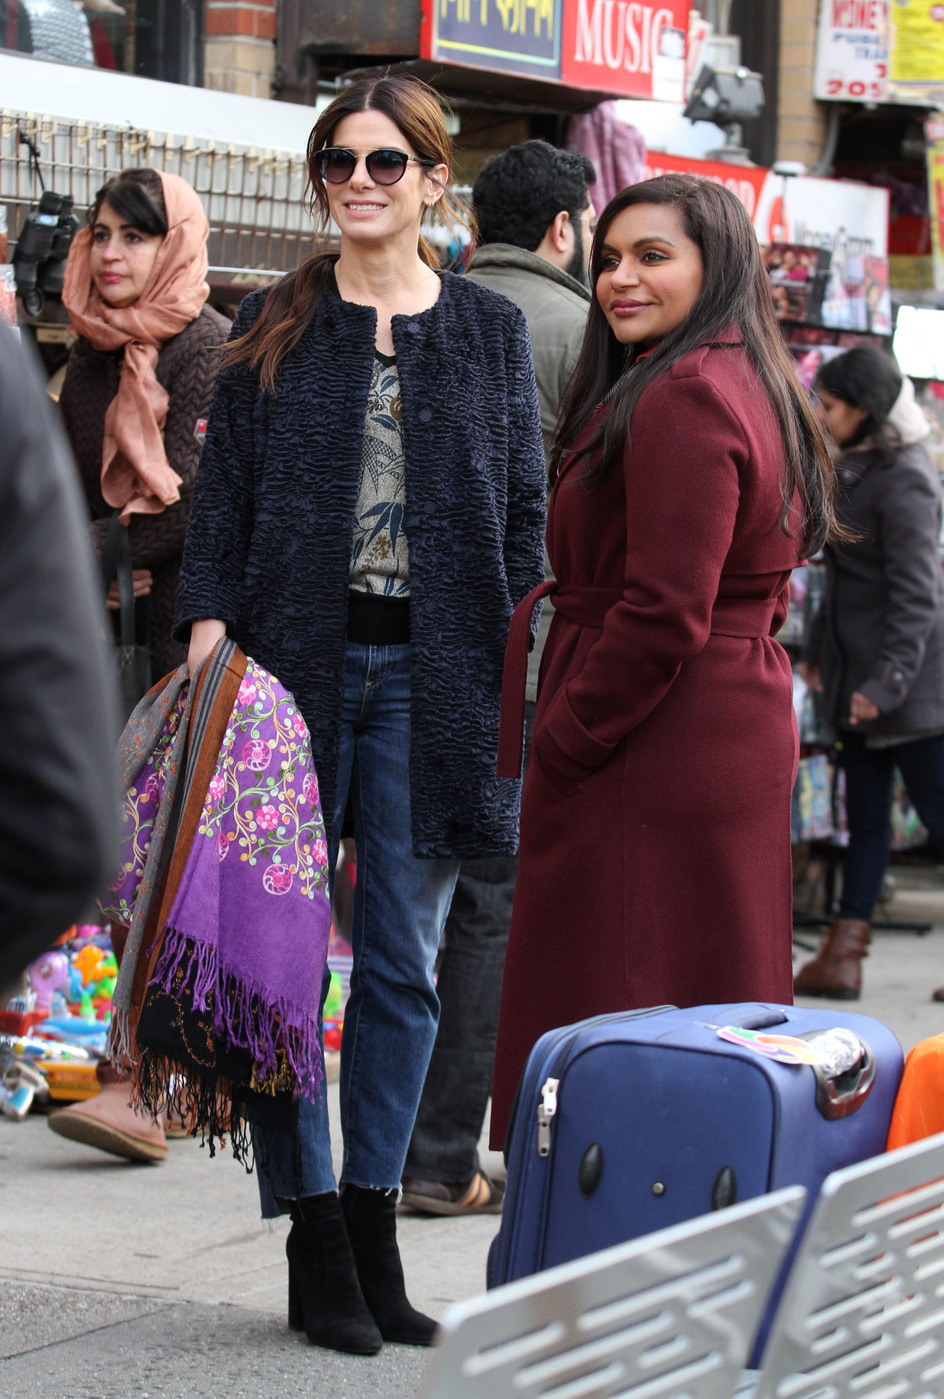 Ocean S Eight Mindy Kaling Says People Think I M Sandra Bullock S Assistant On Set Access Online